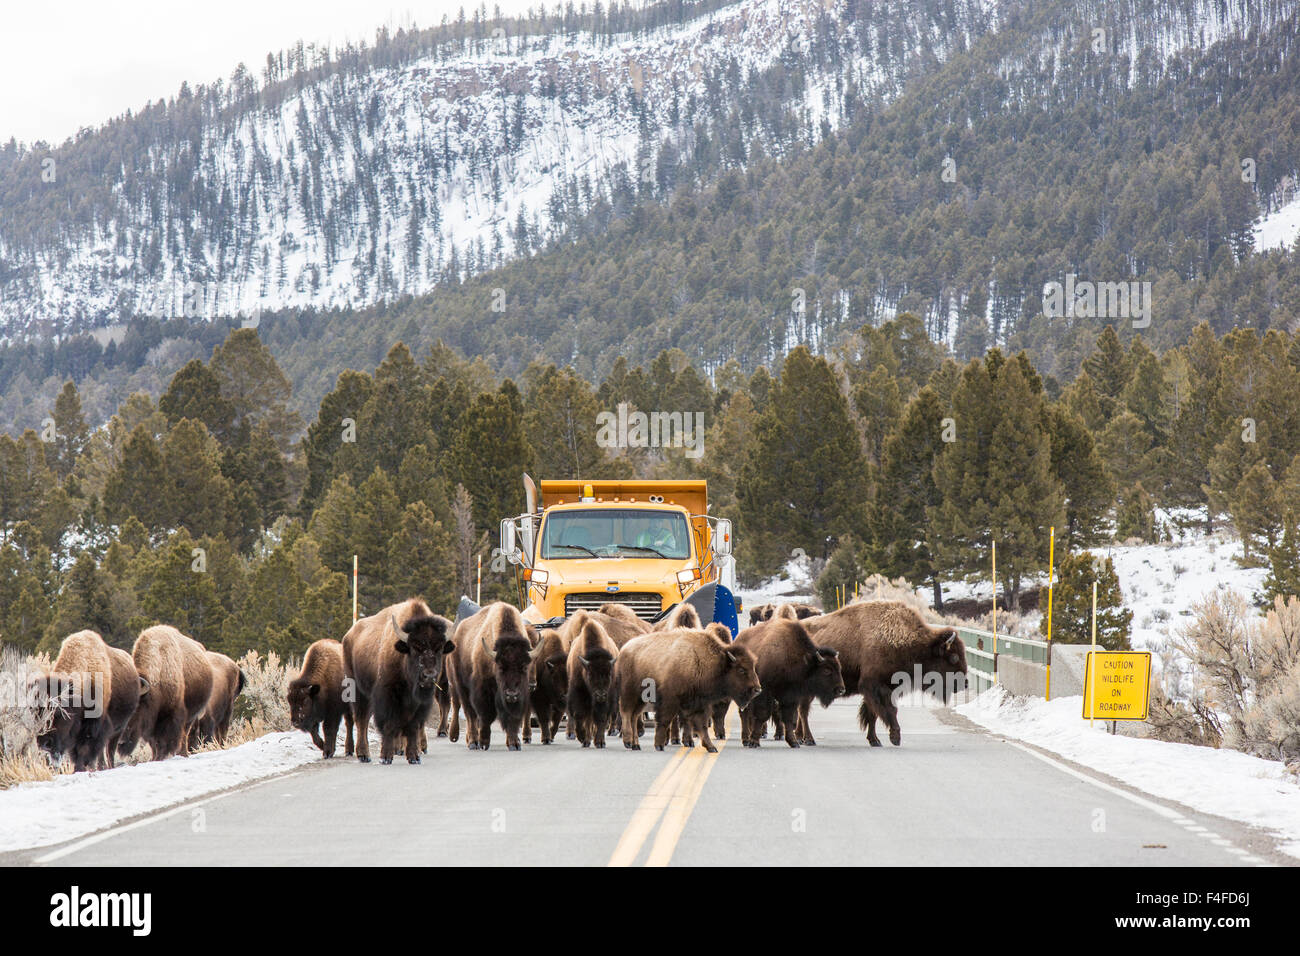 Bison herd causes snowplow delay on bridge in Yellowstone National Park, Wyoming, USA. - Stock Image